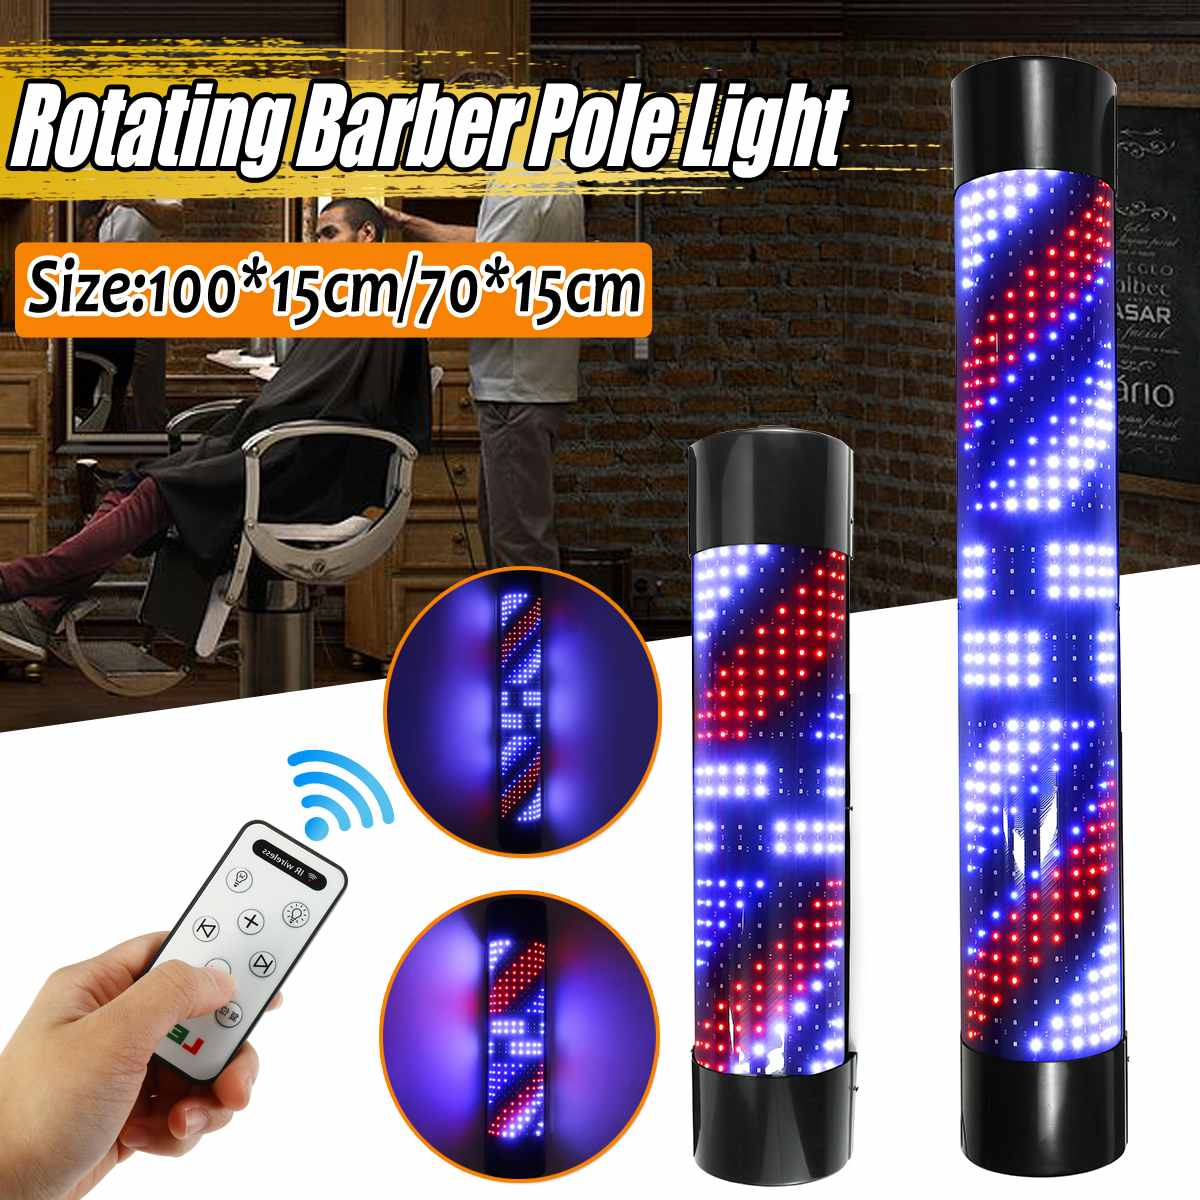 Barber Pole Led Light Hair Salon Light Rotating Light Lamp With Bulb/ RC Marker Lamp LED Downlights 220V EU / 110V US Plug